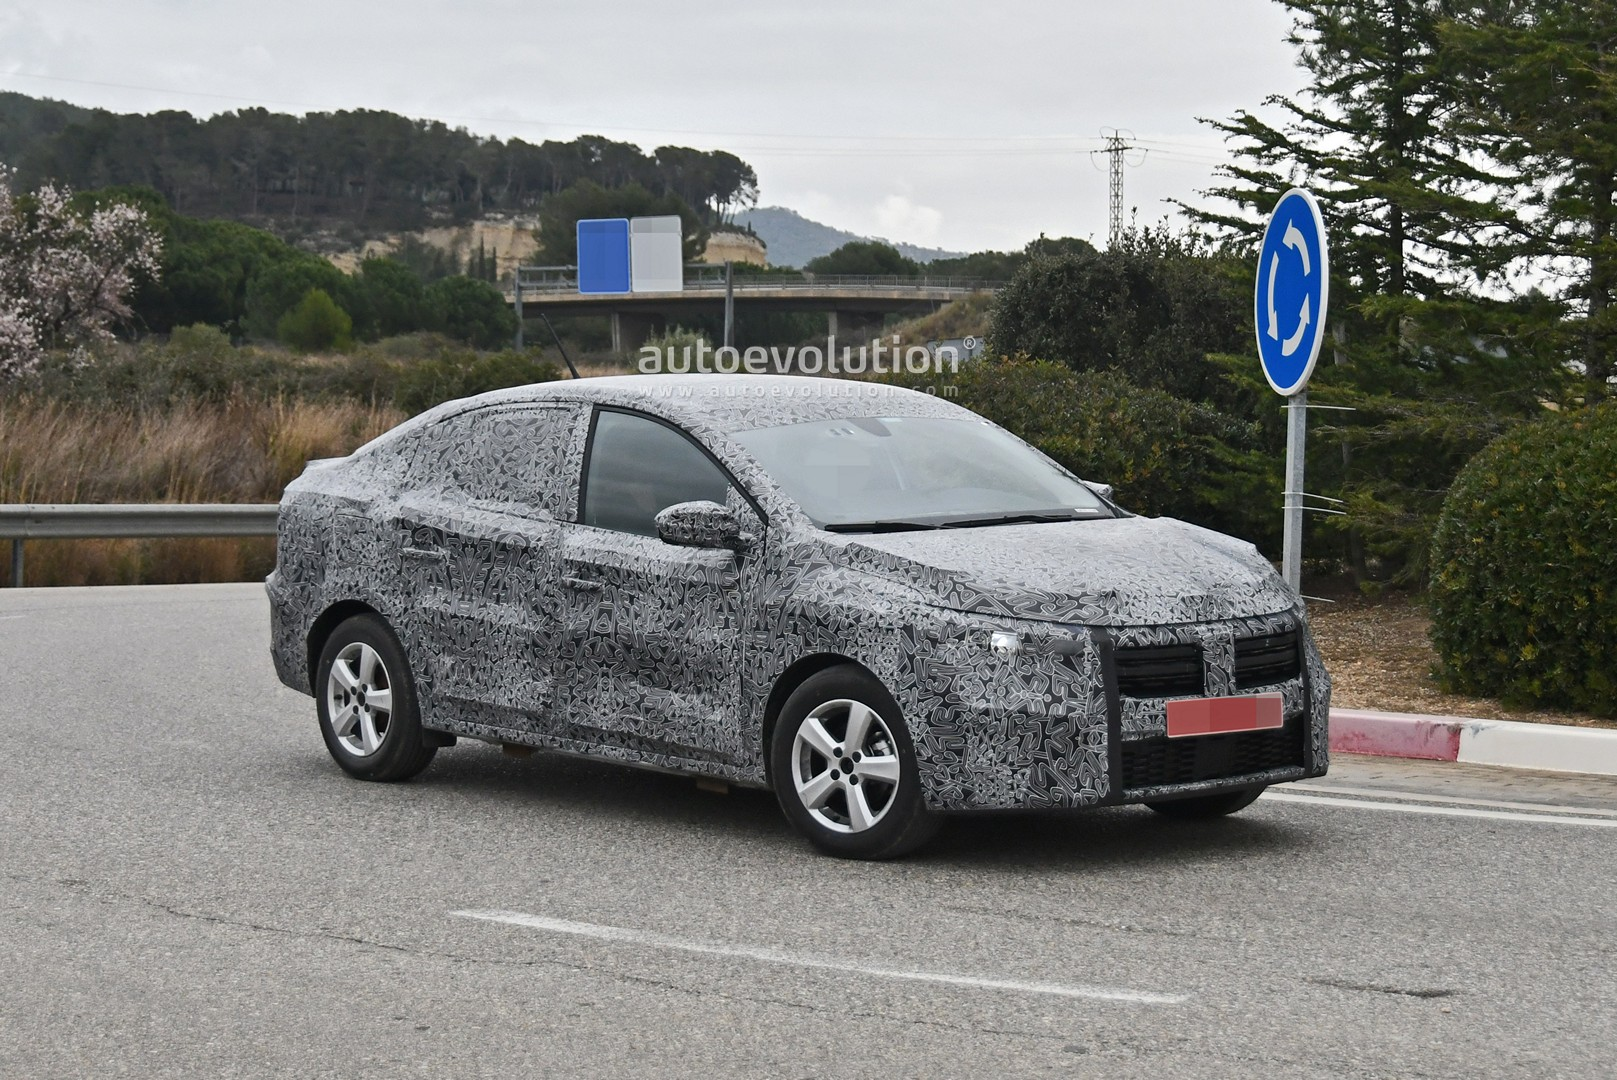 all-new-2021-dacia-logan-spied-with-led-lights-coupe-roof_4